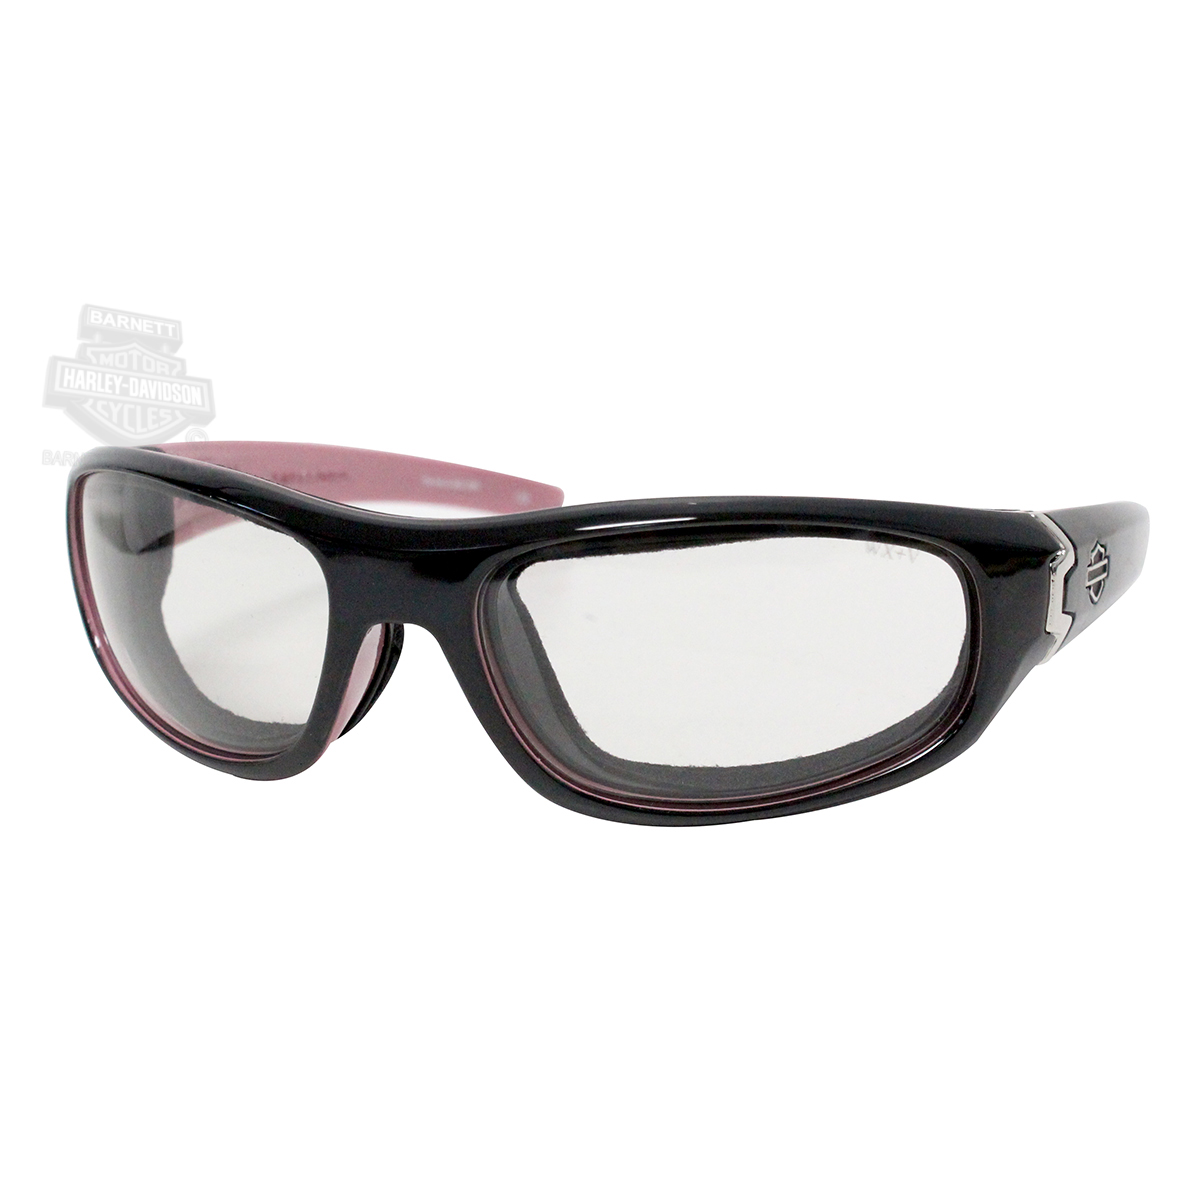 3b016f5881 Harley-Davidson® Curve LA Light Adjust Smoke Grey Lenses in a Cotton Candy  Frame Sunglasses by Wiley X®